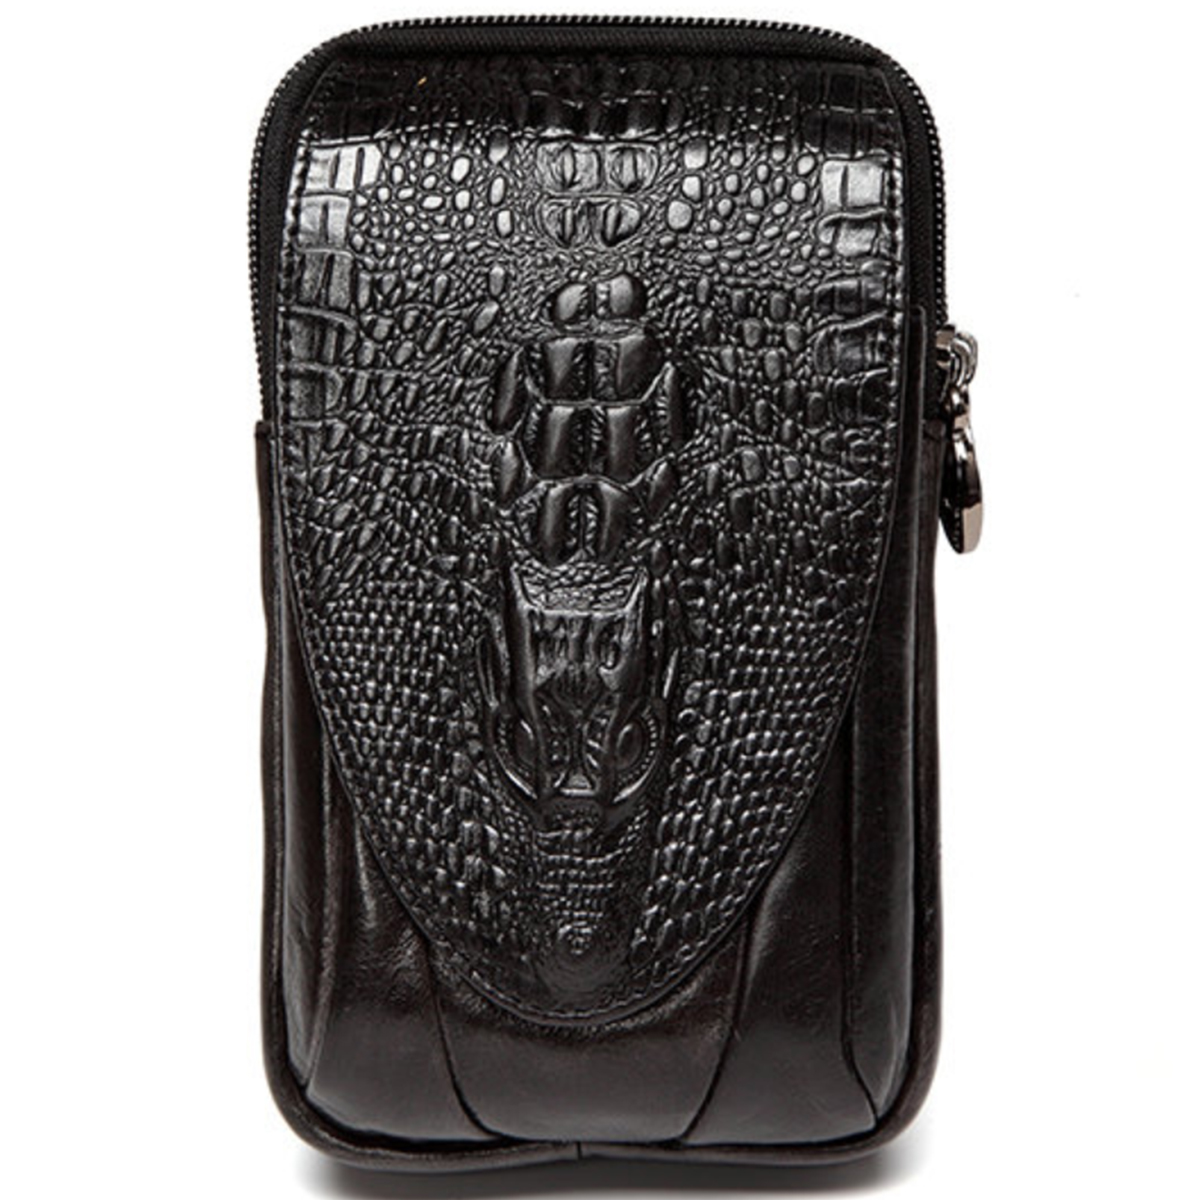 Croc Embossed Leather 6in Phone Pouch Belt Hip Bum Bag For Men Free Shipping